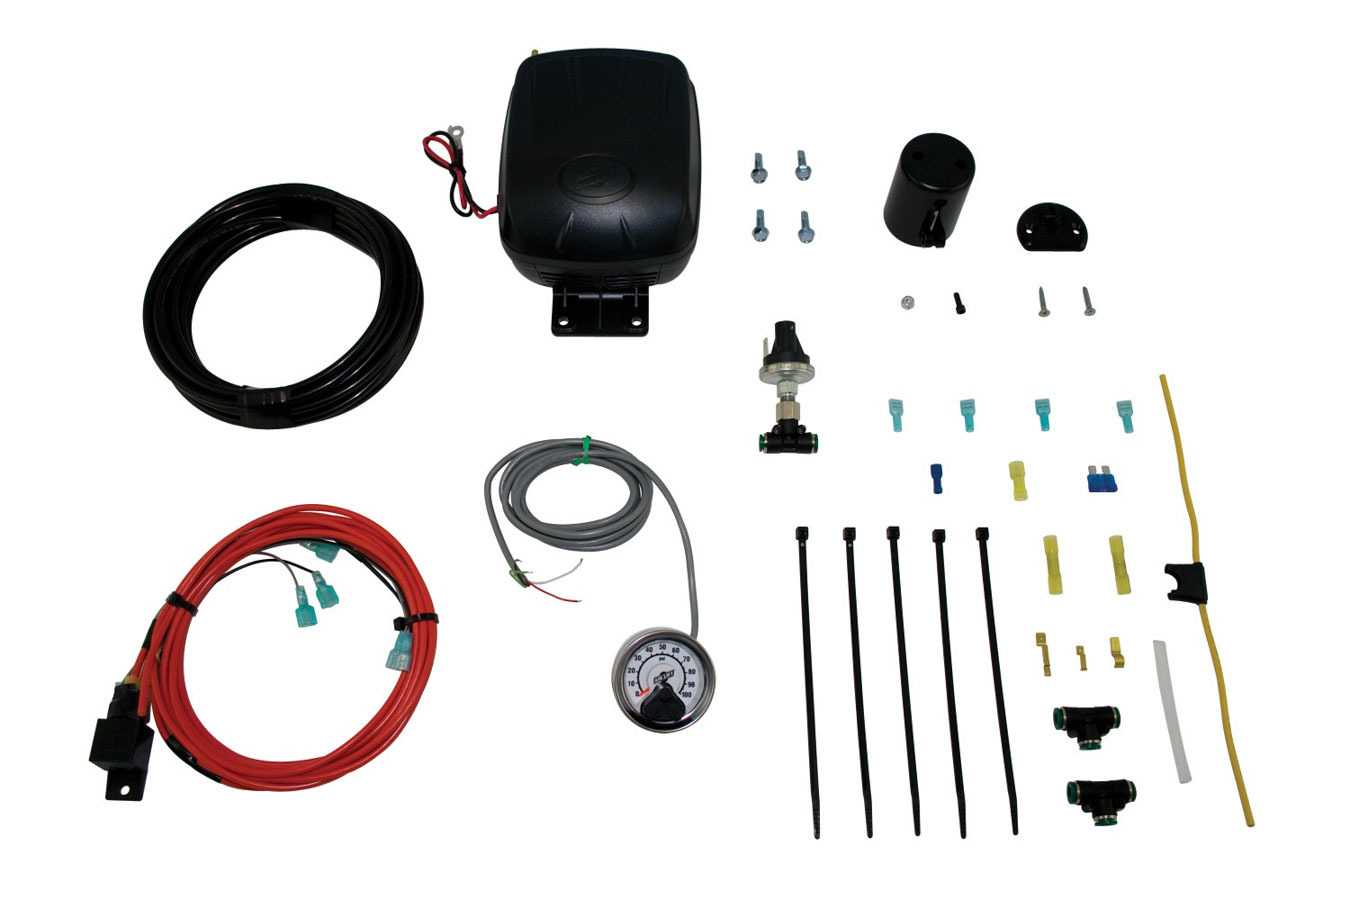 Air Lift 25850 Air Compressor, Load Controller Single, Suspension, 100 psi Max, 12V, Single Gauge, Controls / Pressure Sensor, Airlift Air Spring Kits, Kit